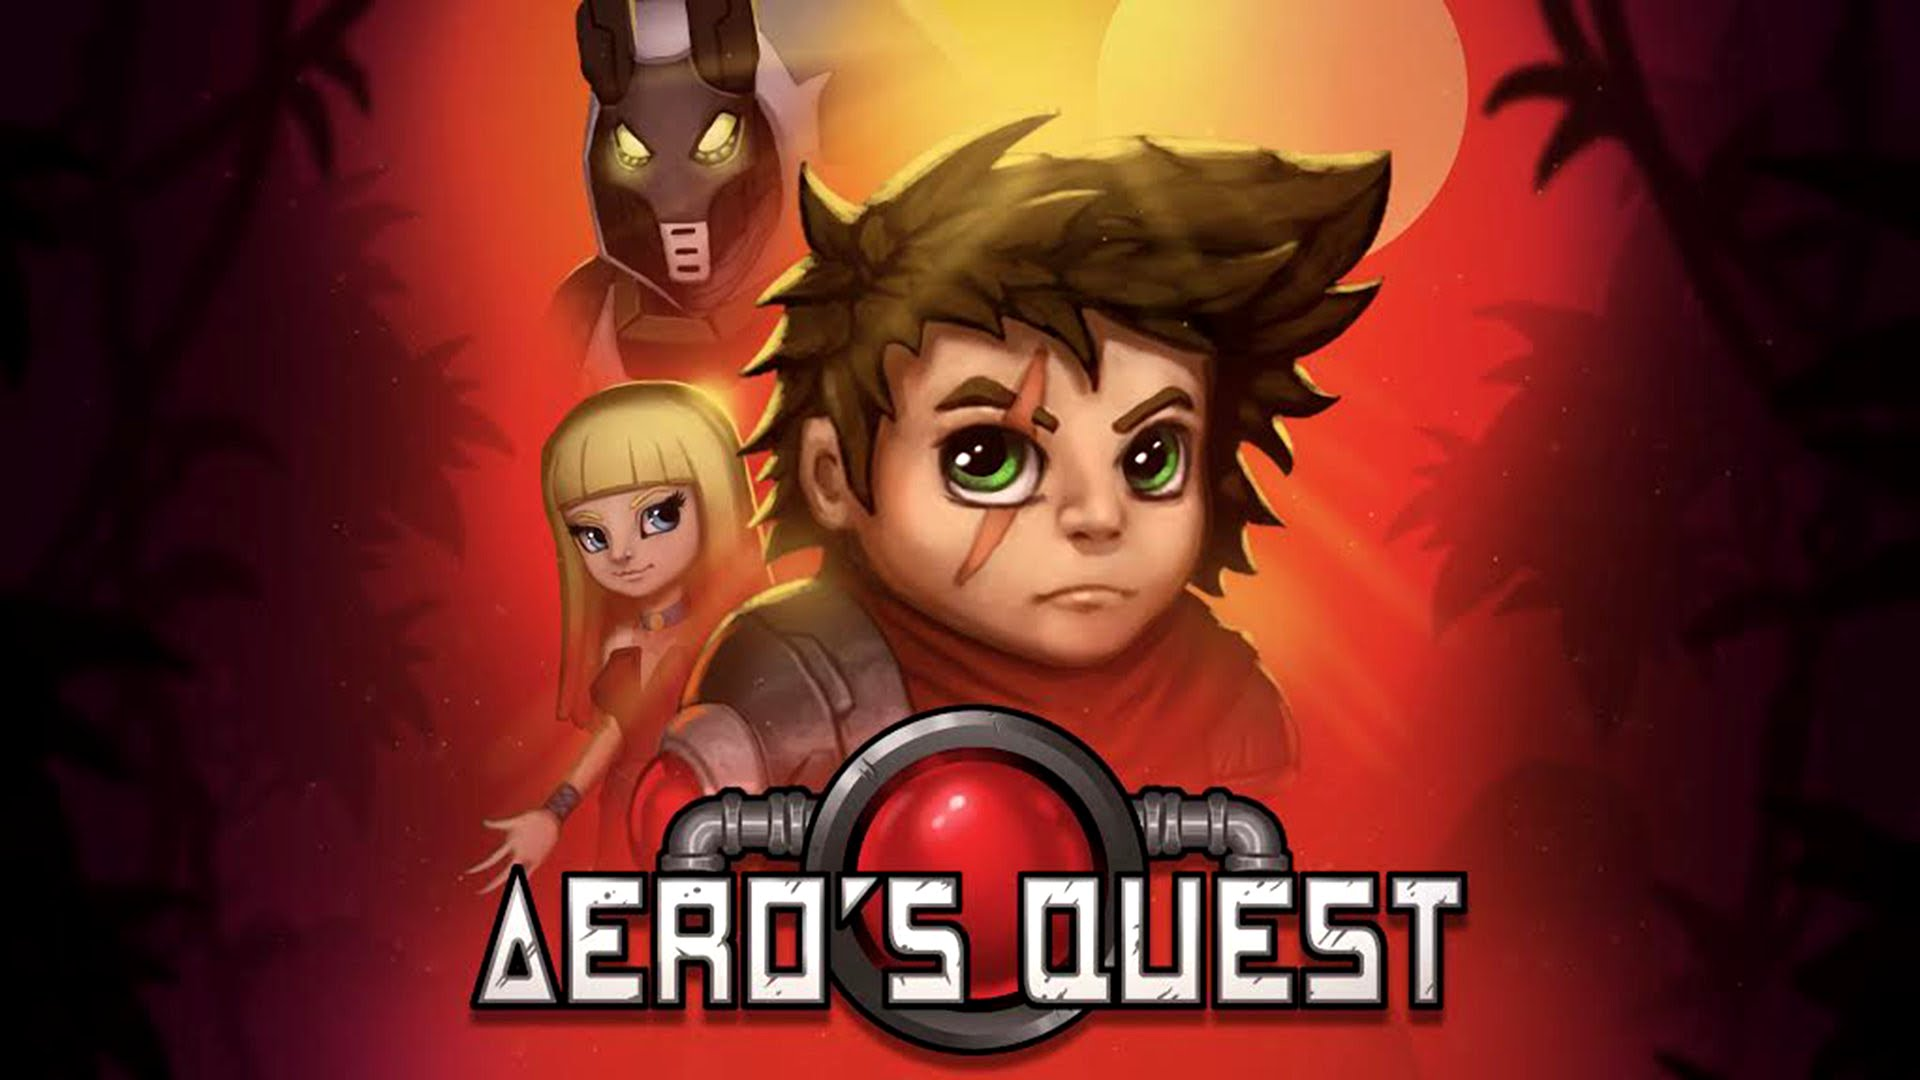 HQ Aero's Quest Wallpapers   File 138.81Kb